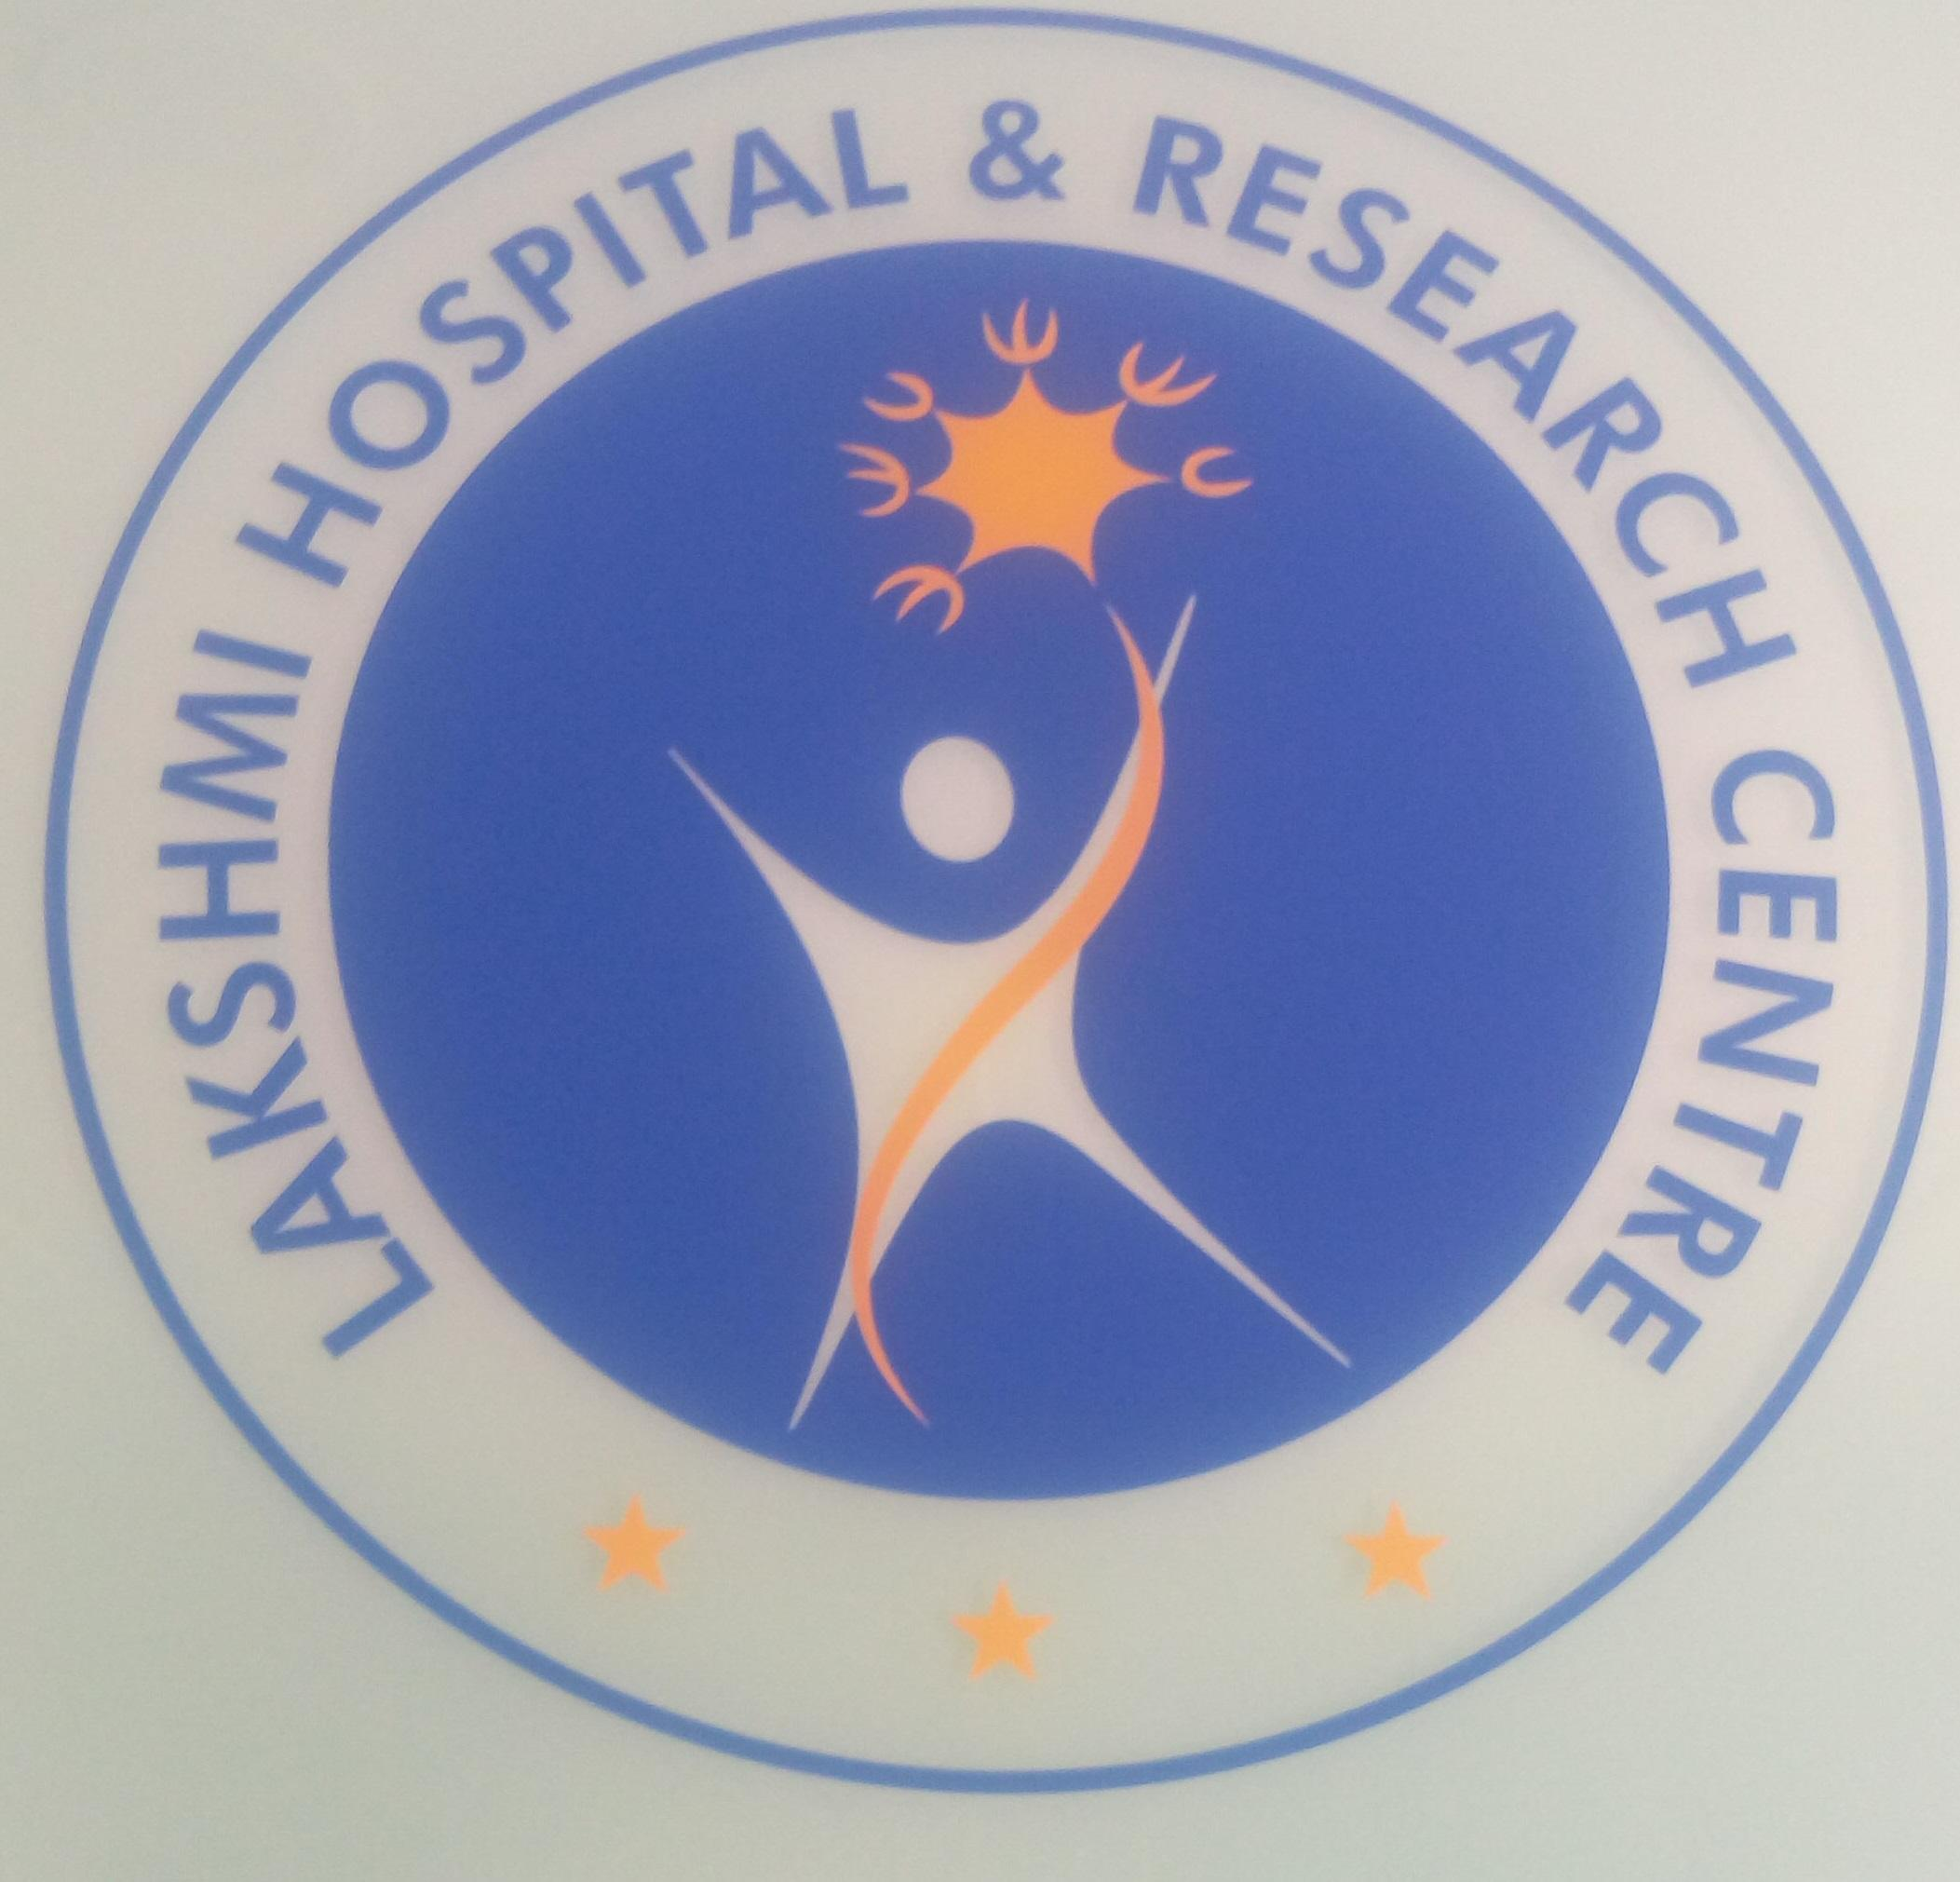 Lakshmi Hospital & Research Centre